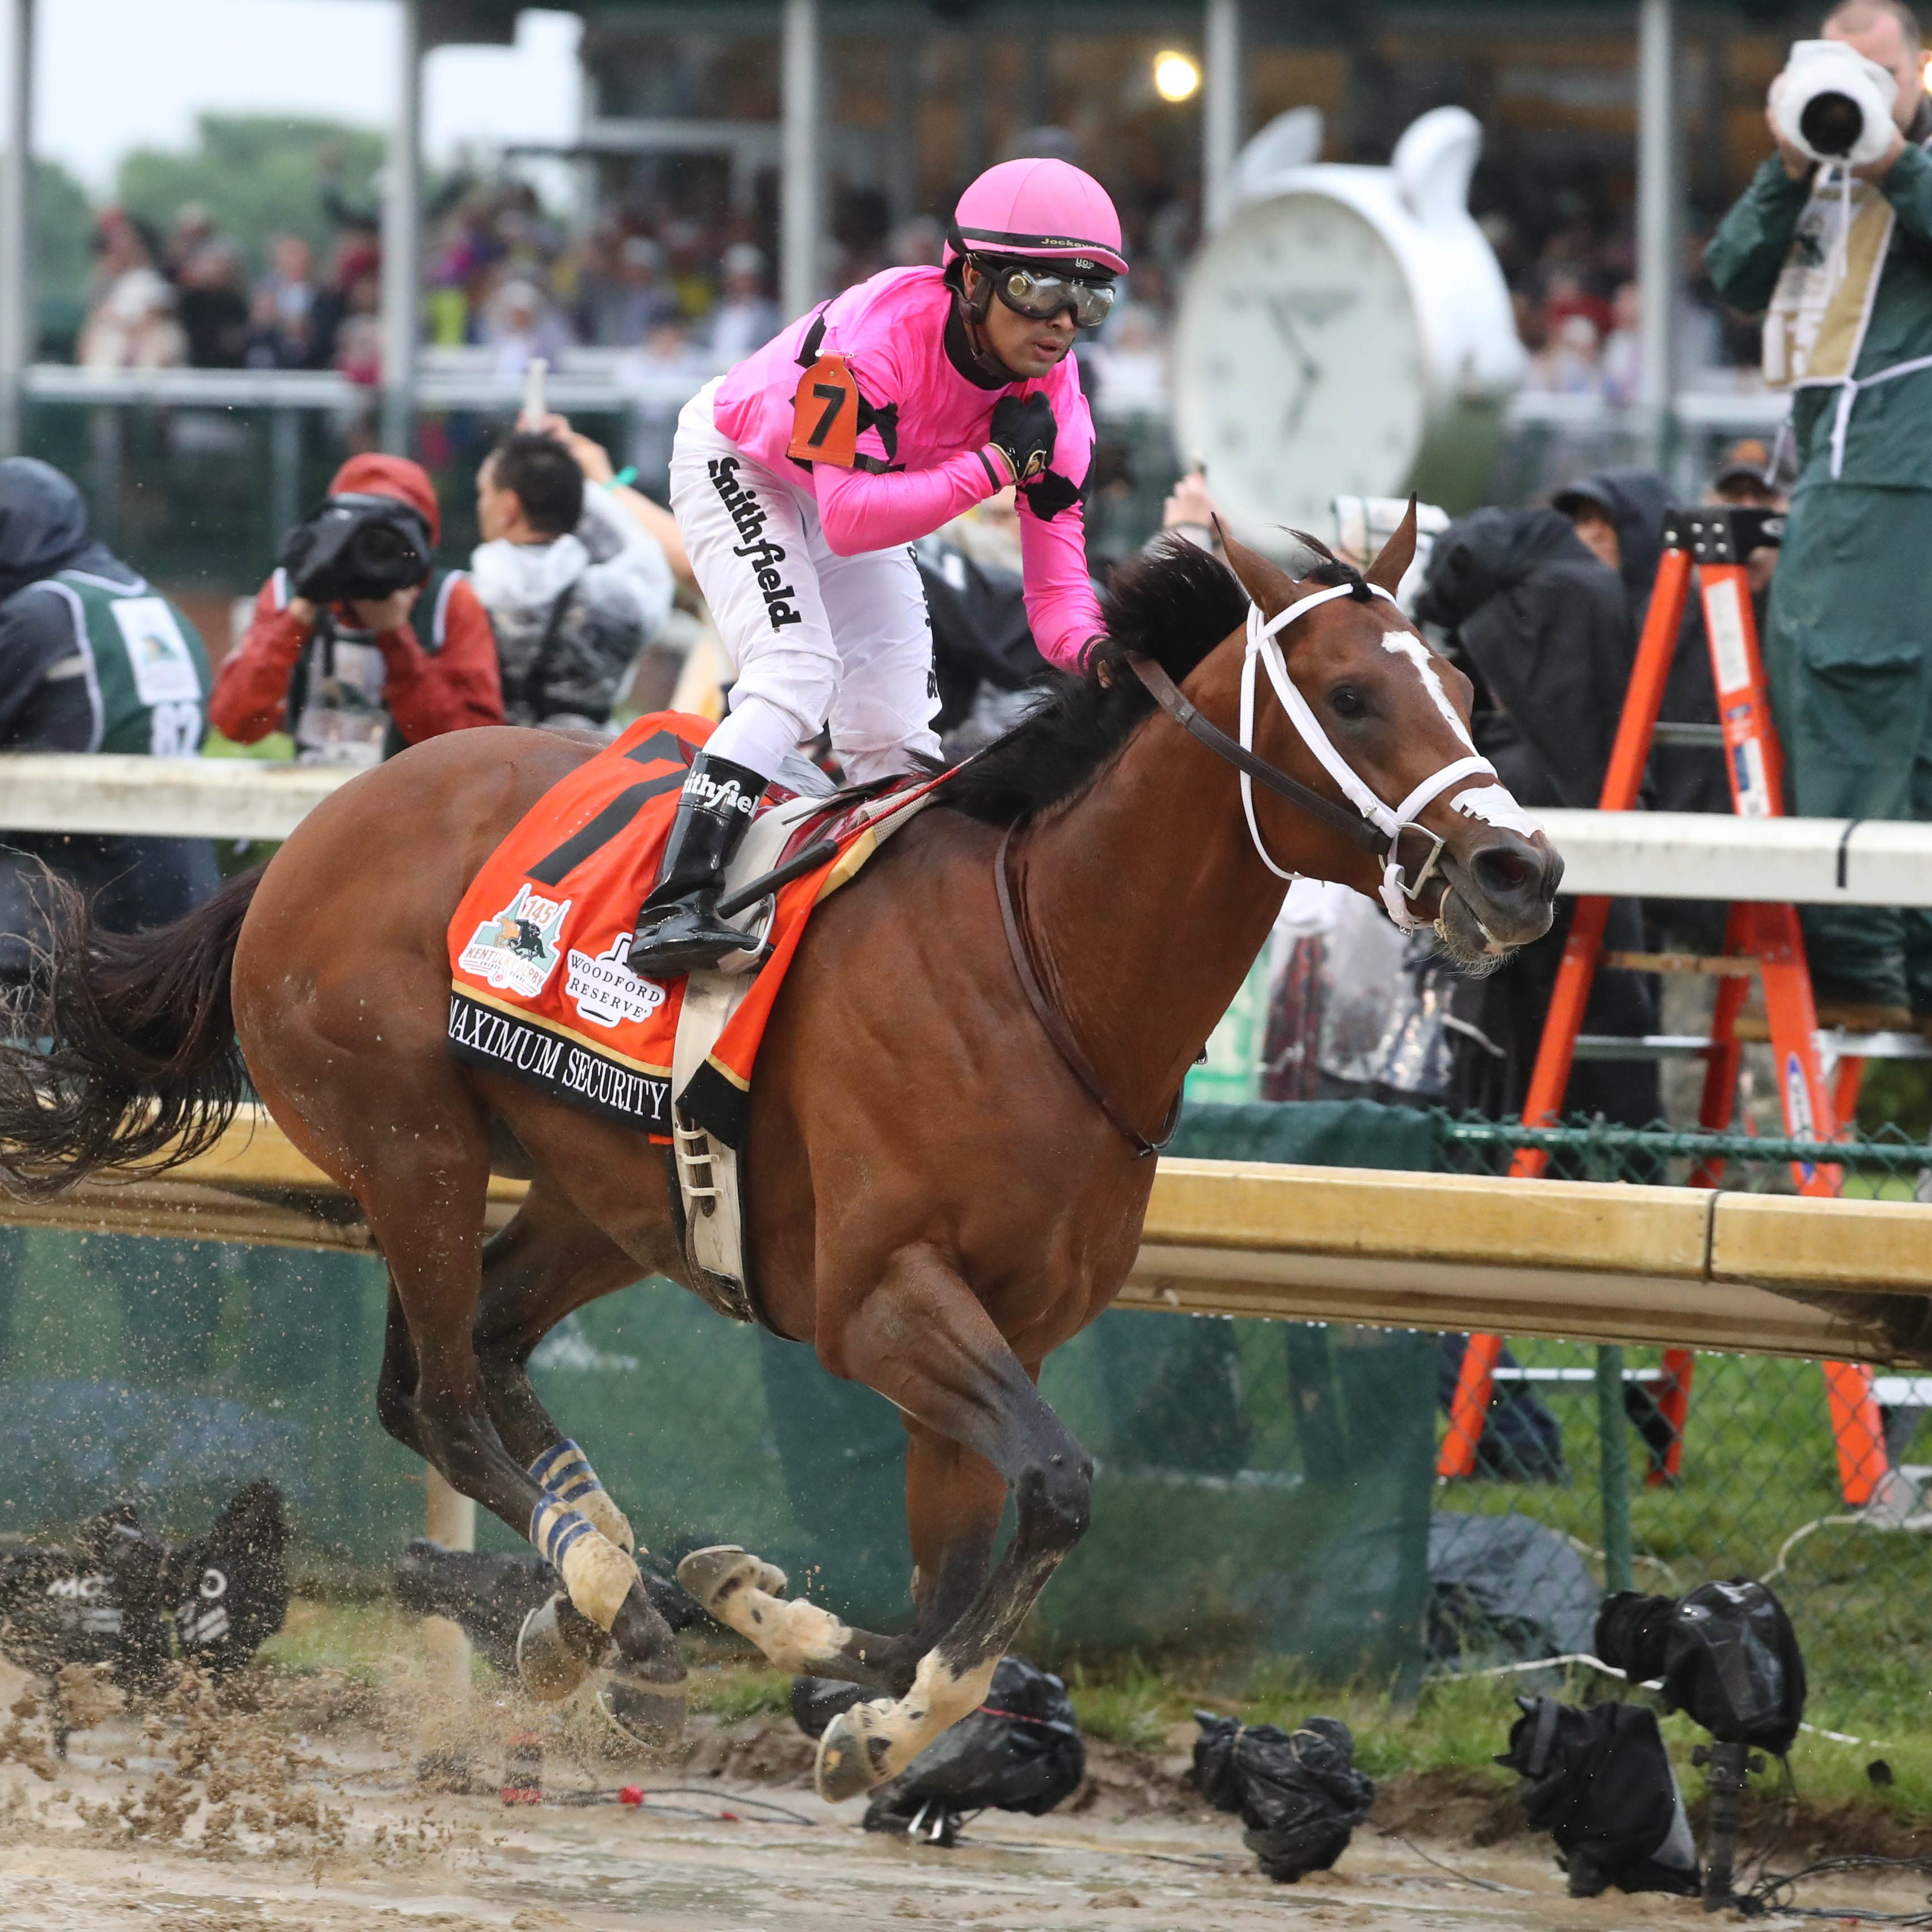 Maximum Security: X-rays negative after Kentucky Derby DQ; unclear when training will resume